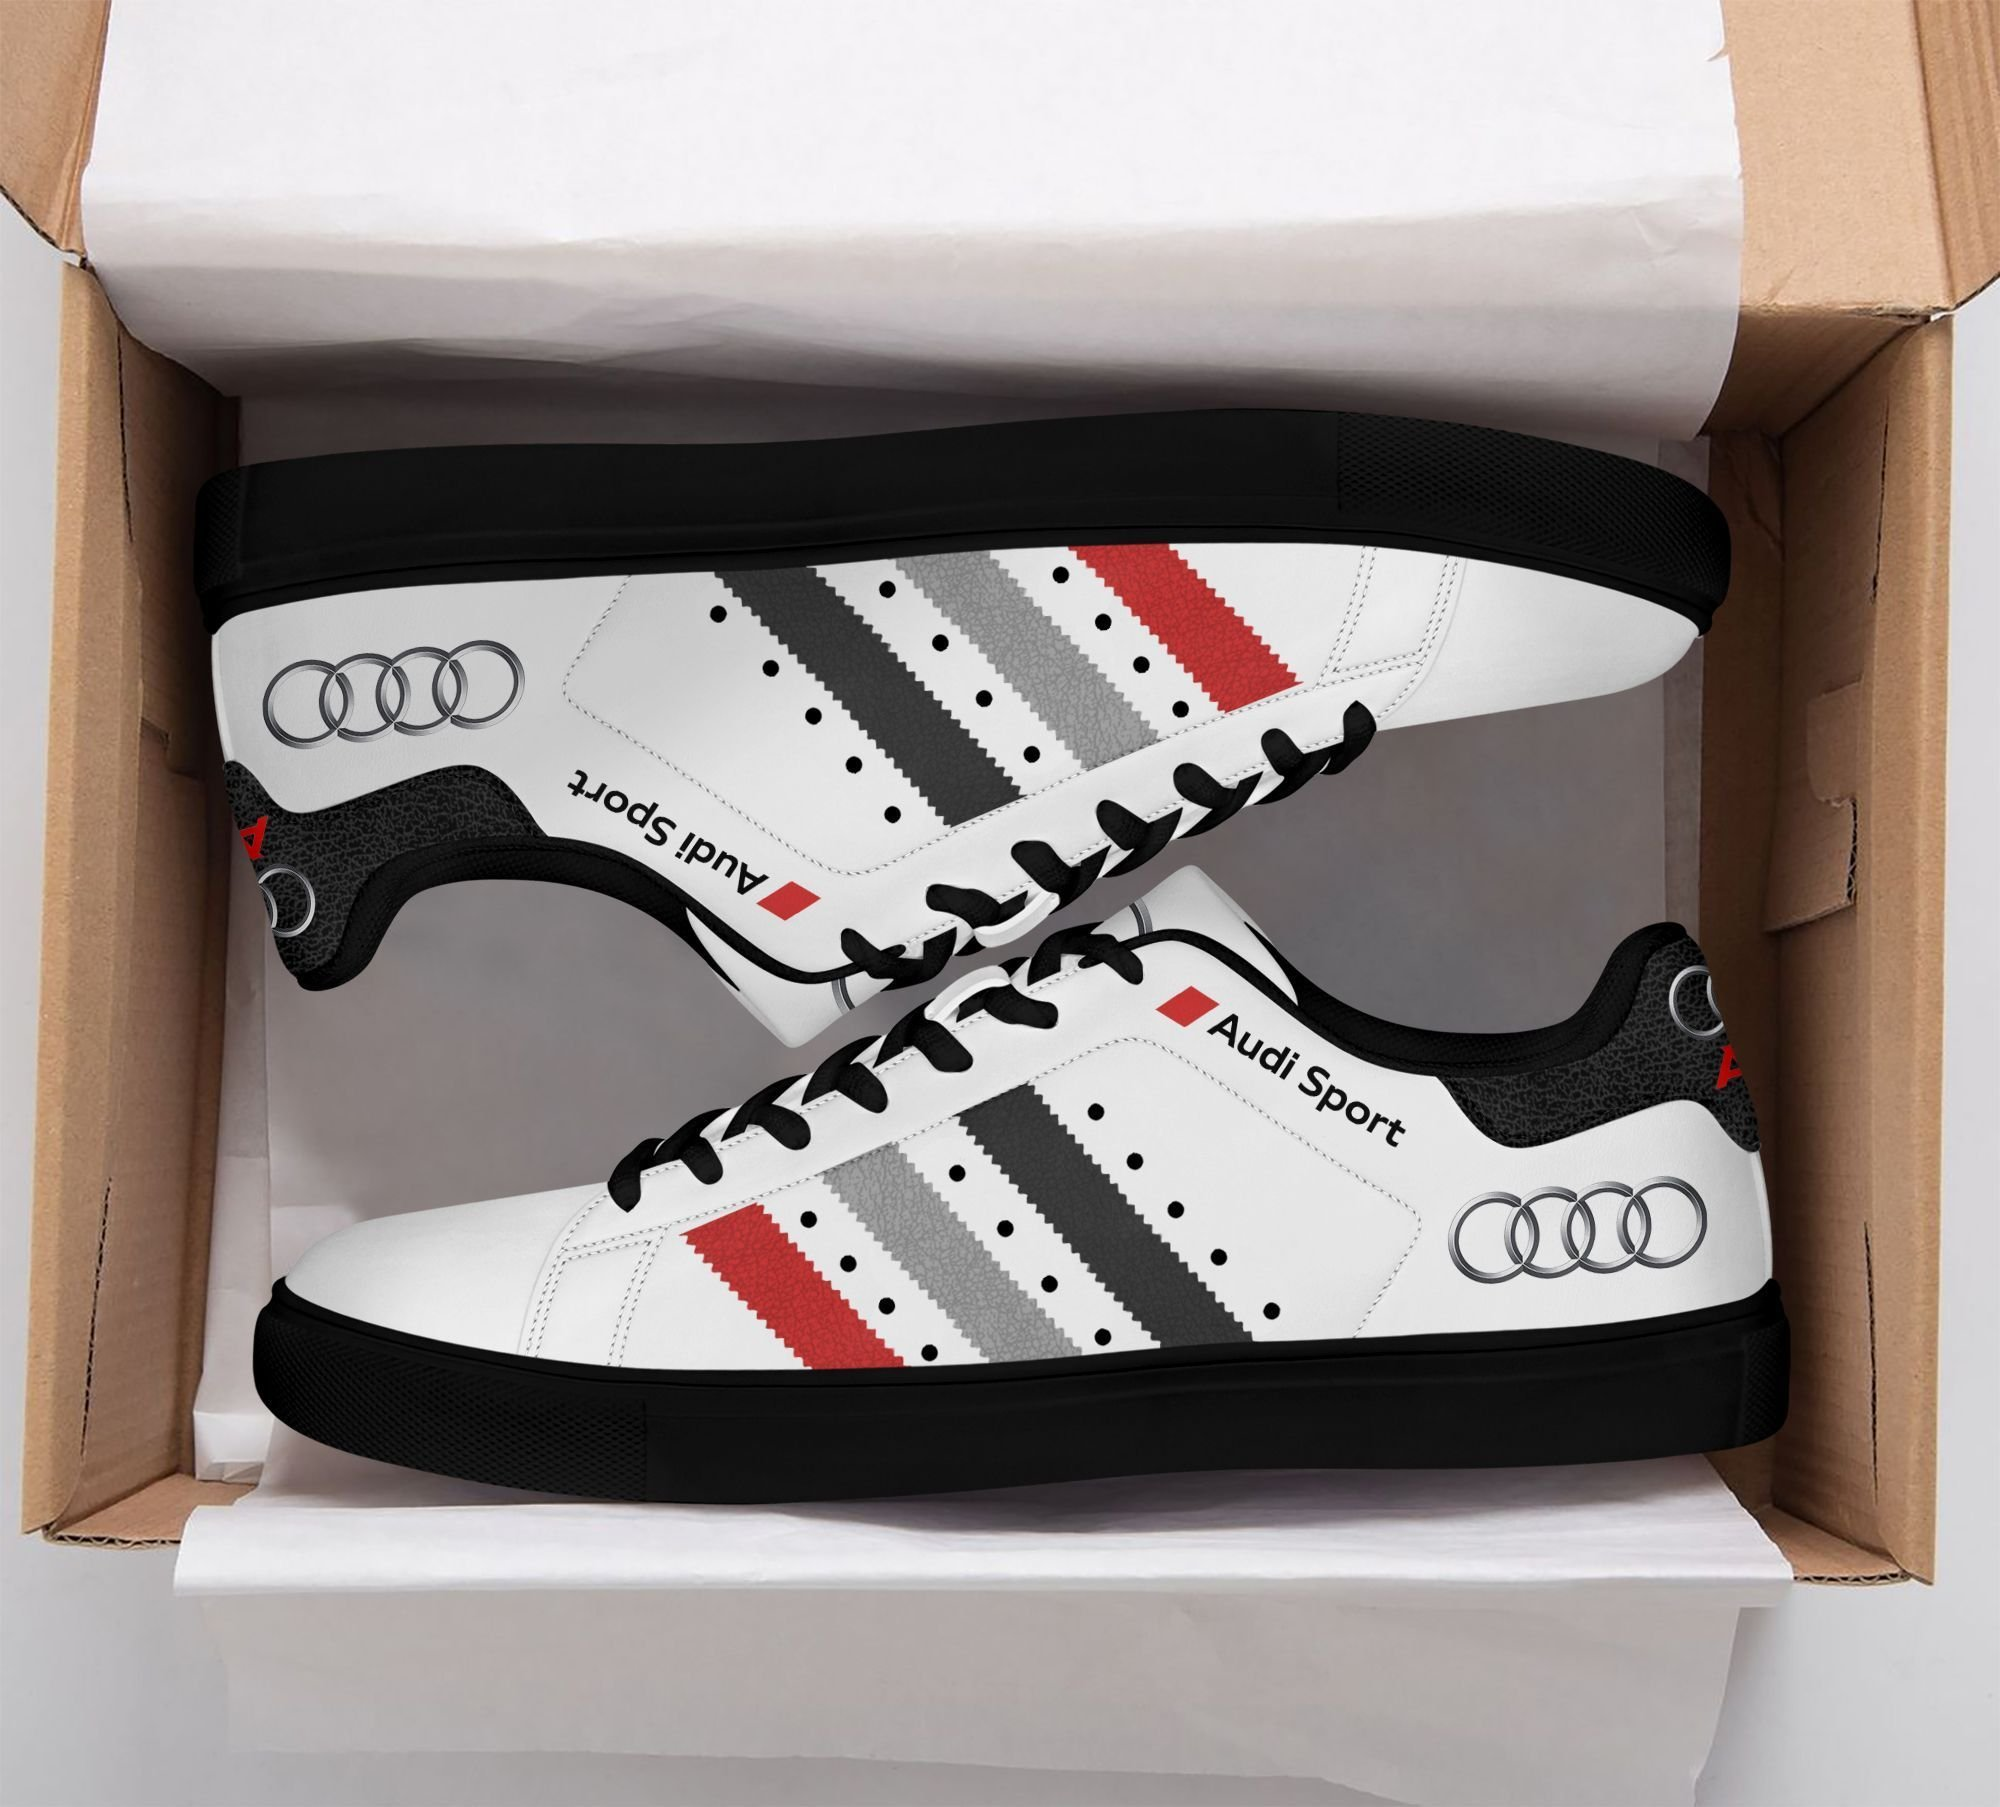 Audi Sport stan smith low top shoes 1